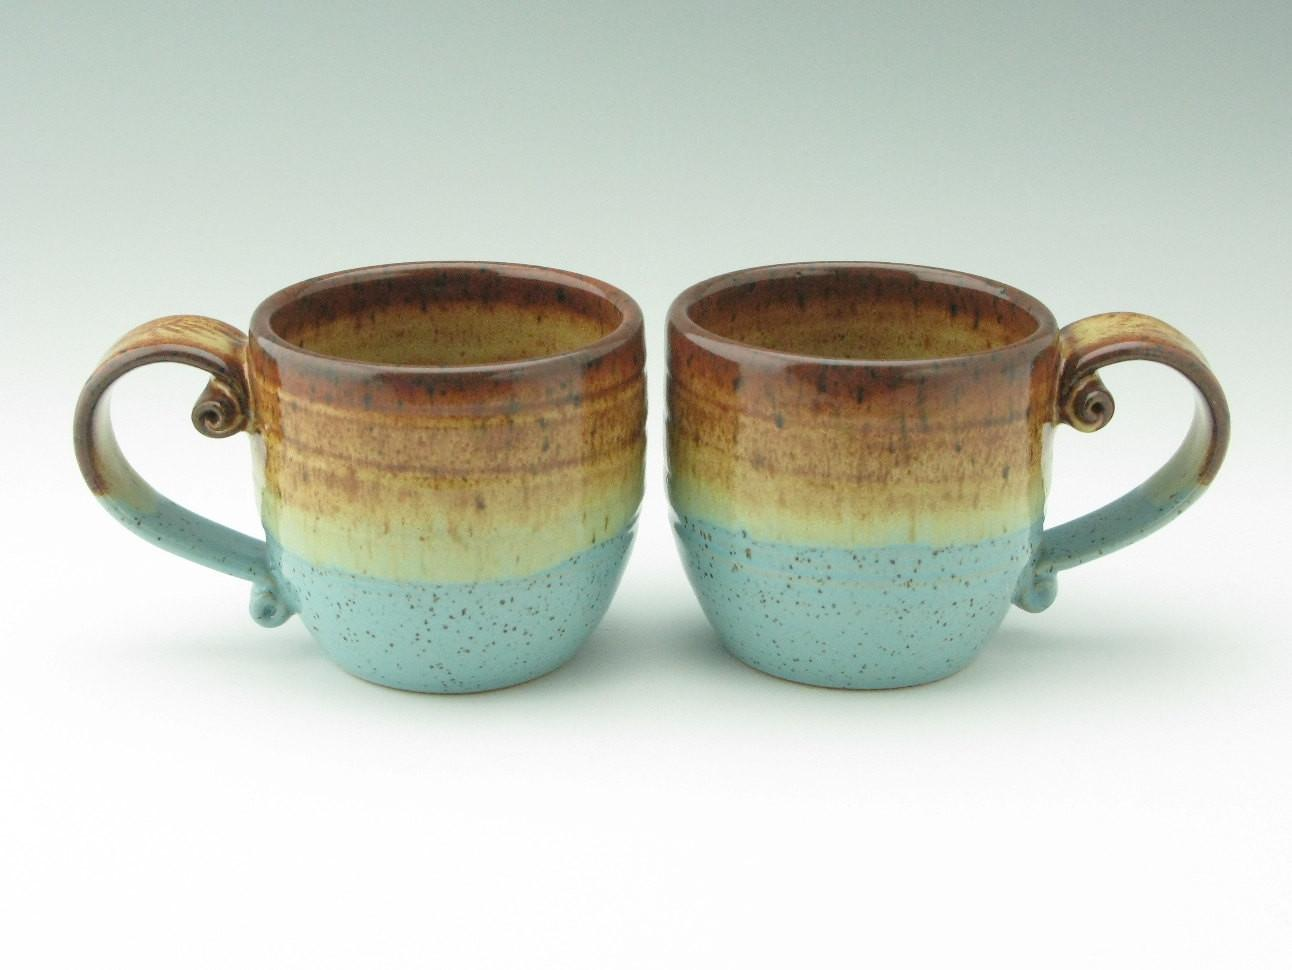 Handmade Pottery Mug Stoneware Coffee Twistedriverclay